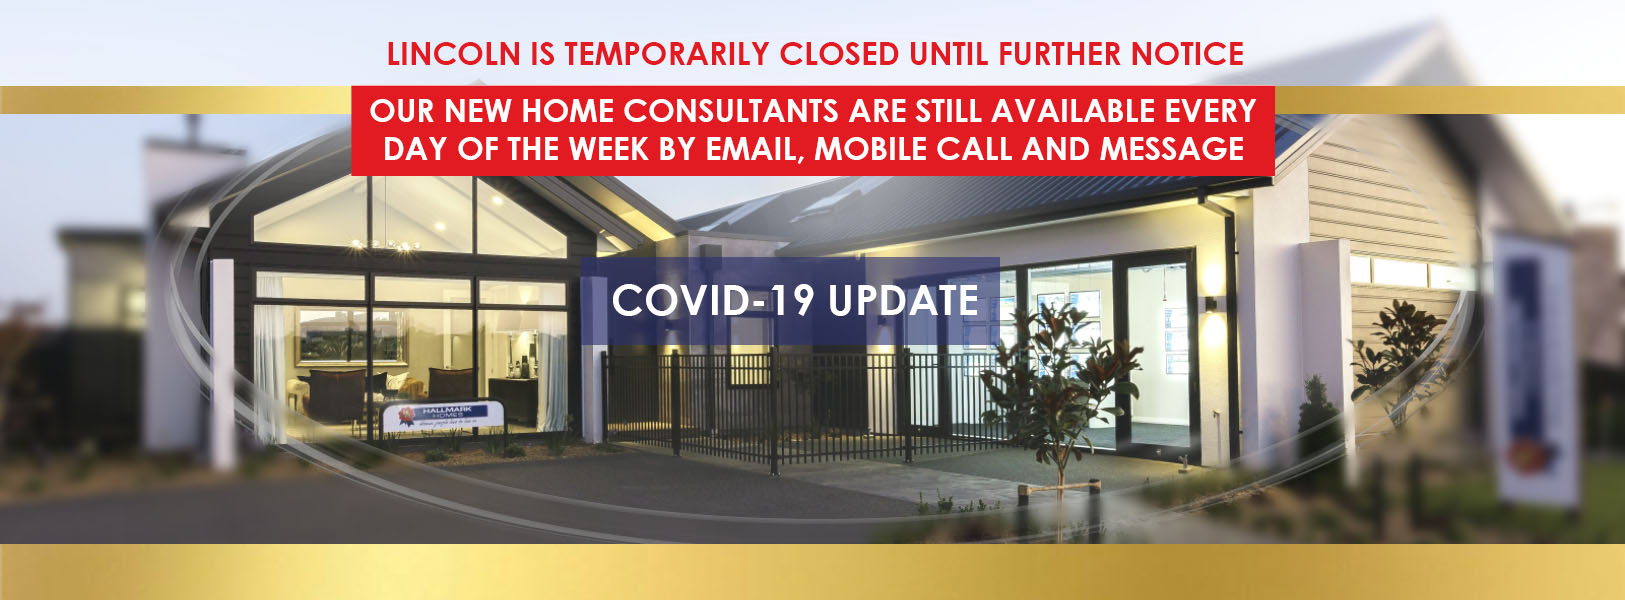 Covid 19 update home page slider V2 - Covid-19 Update